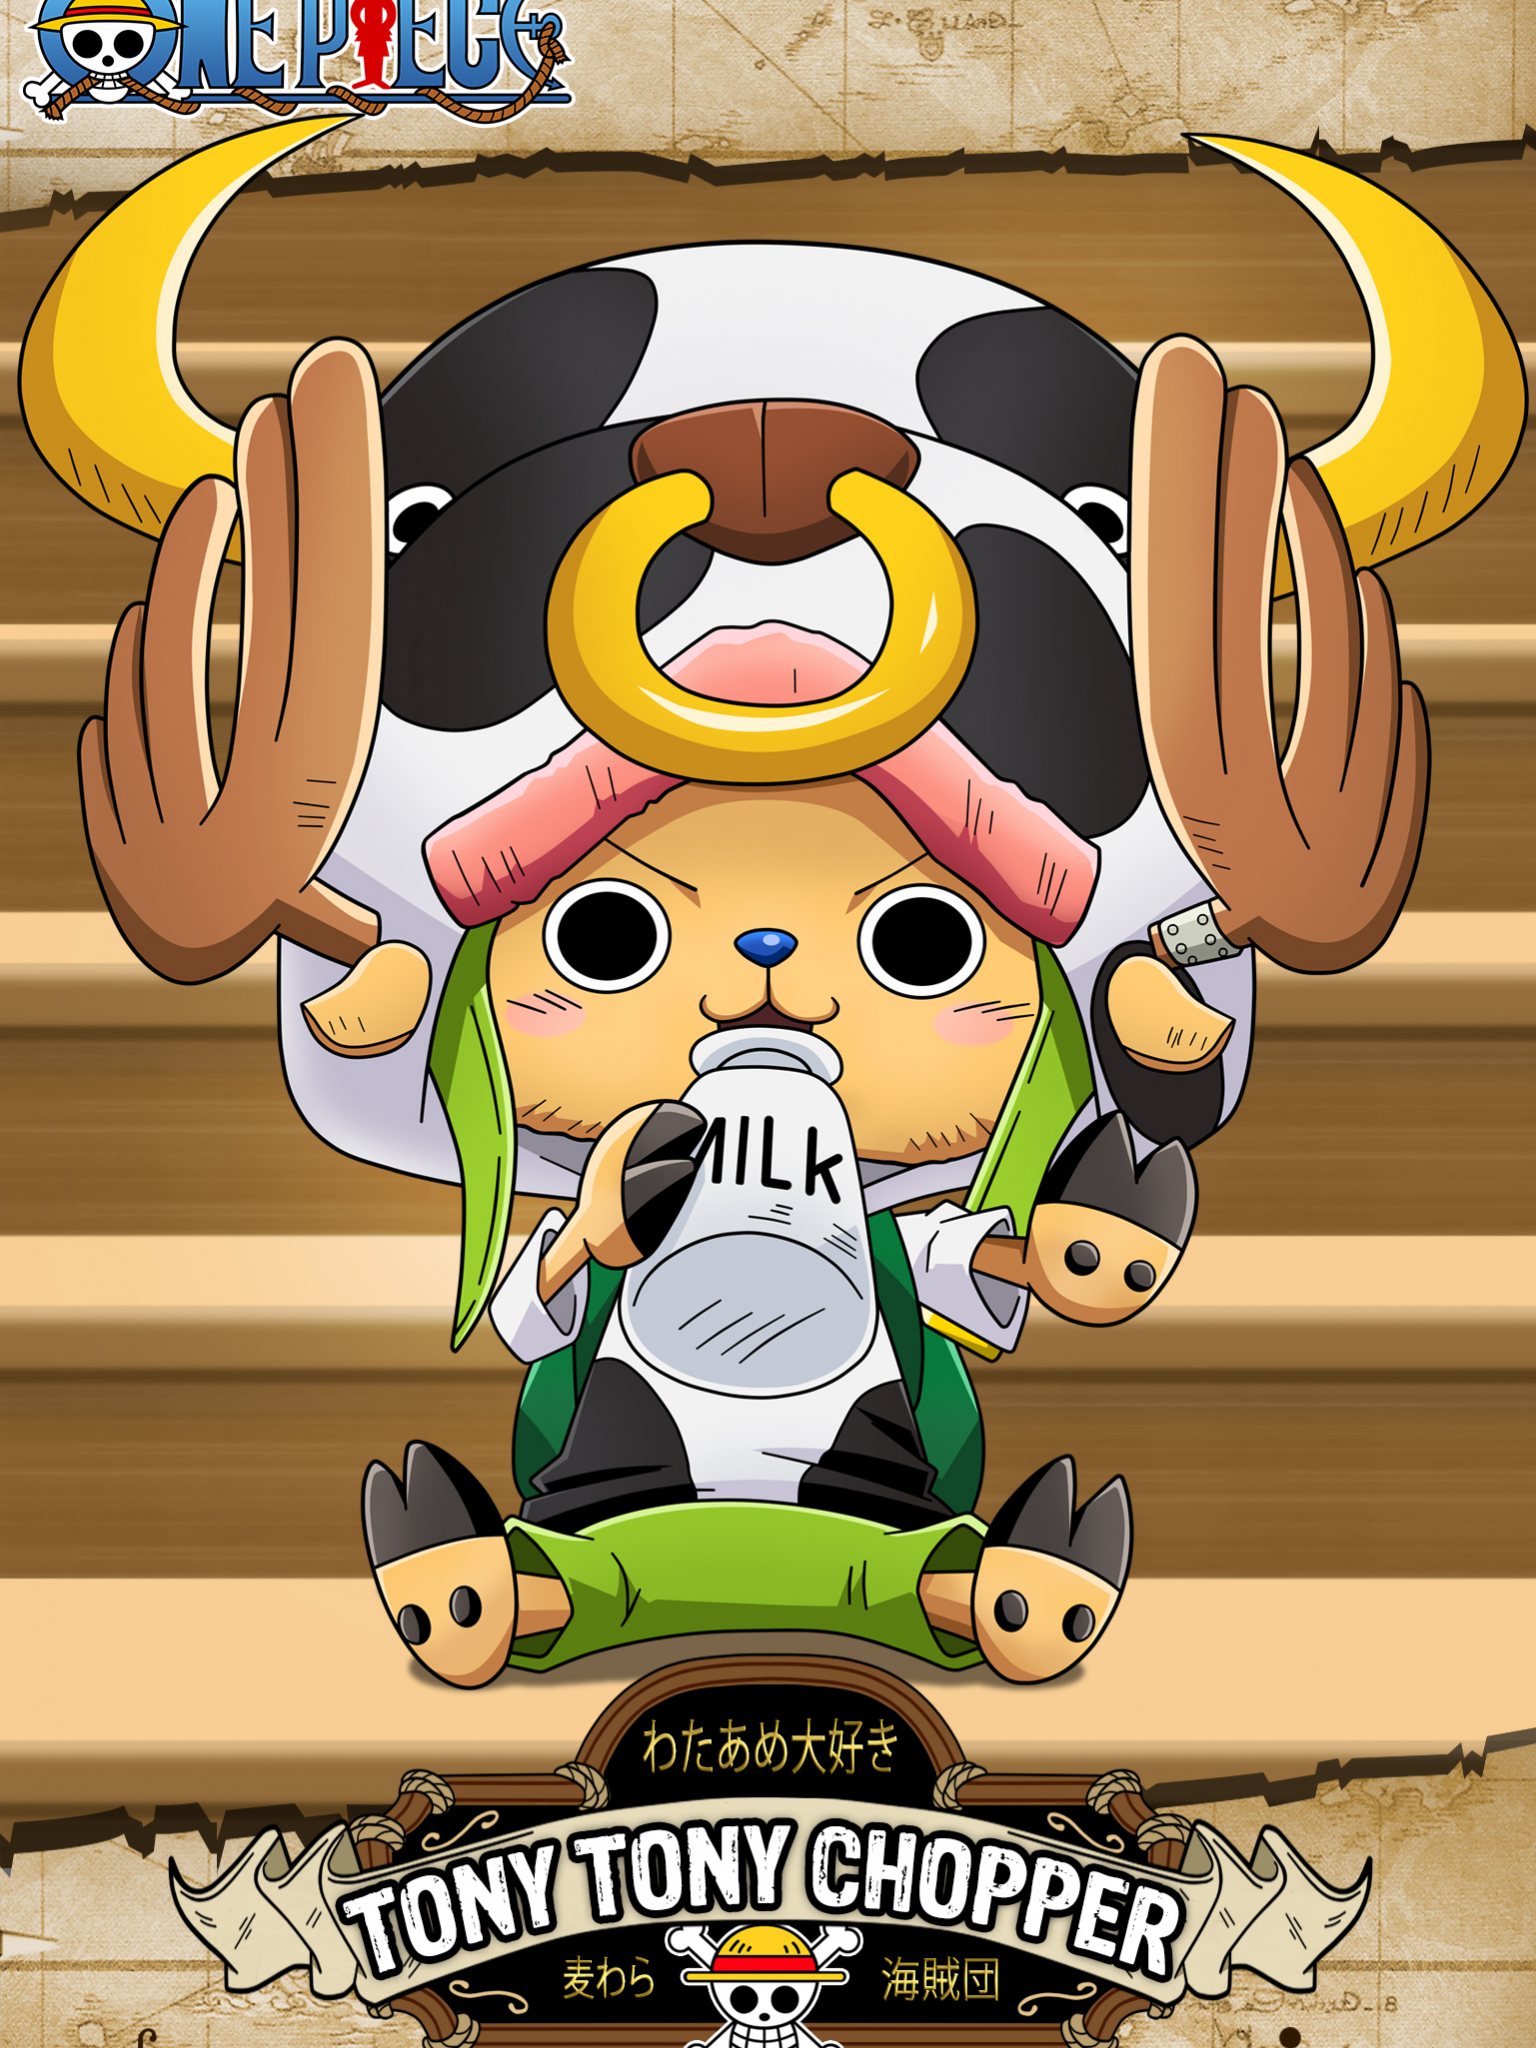 Free Download One Piece Tony Tony Chopper By Onepieceworldproject 1537x2252 For Your Desktop Mobile Tablet Explore 49 One Piece Chopper Wallpaper One Piece Wallpaper 4k One Piece Wallpaper One